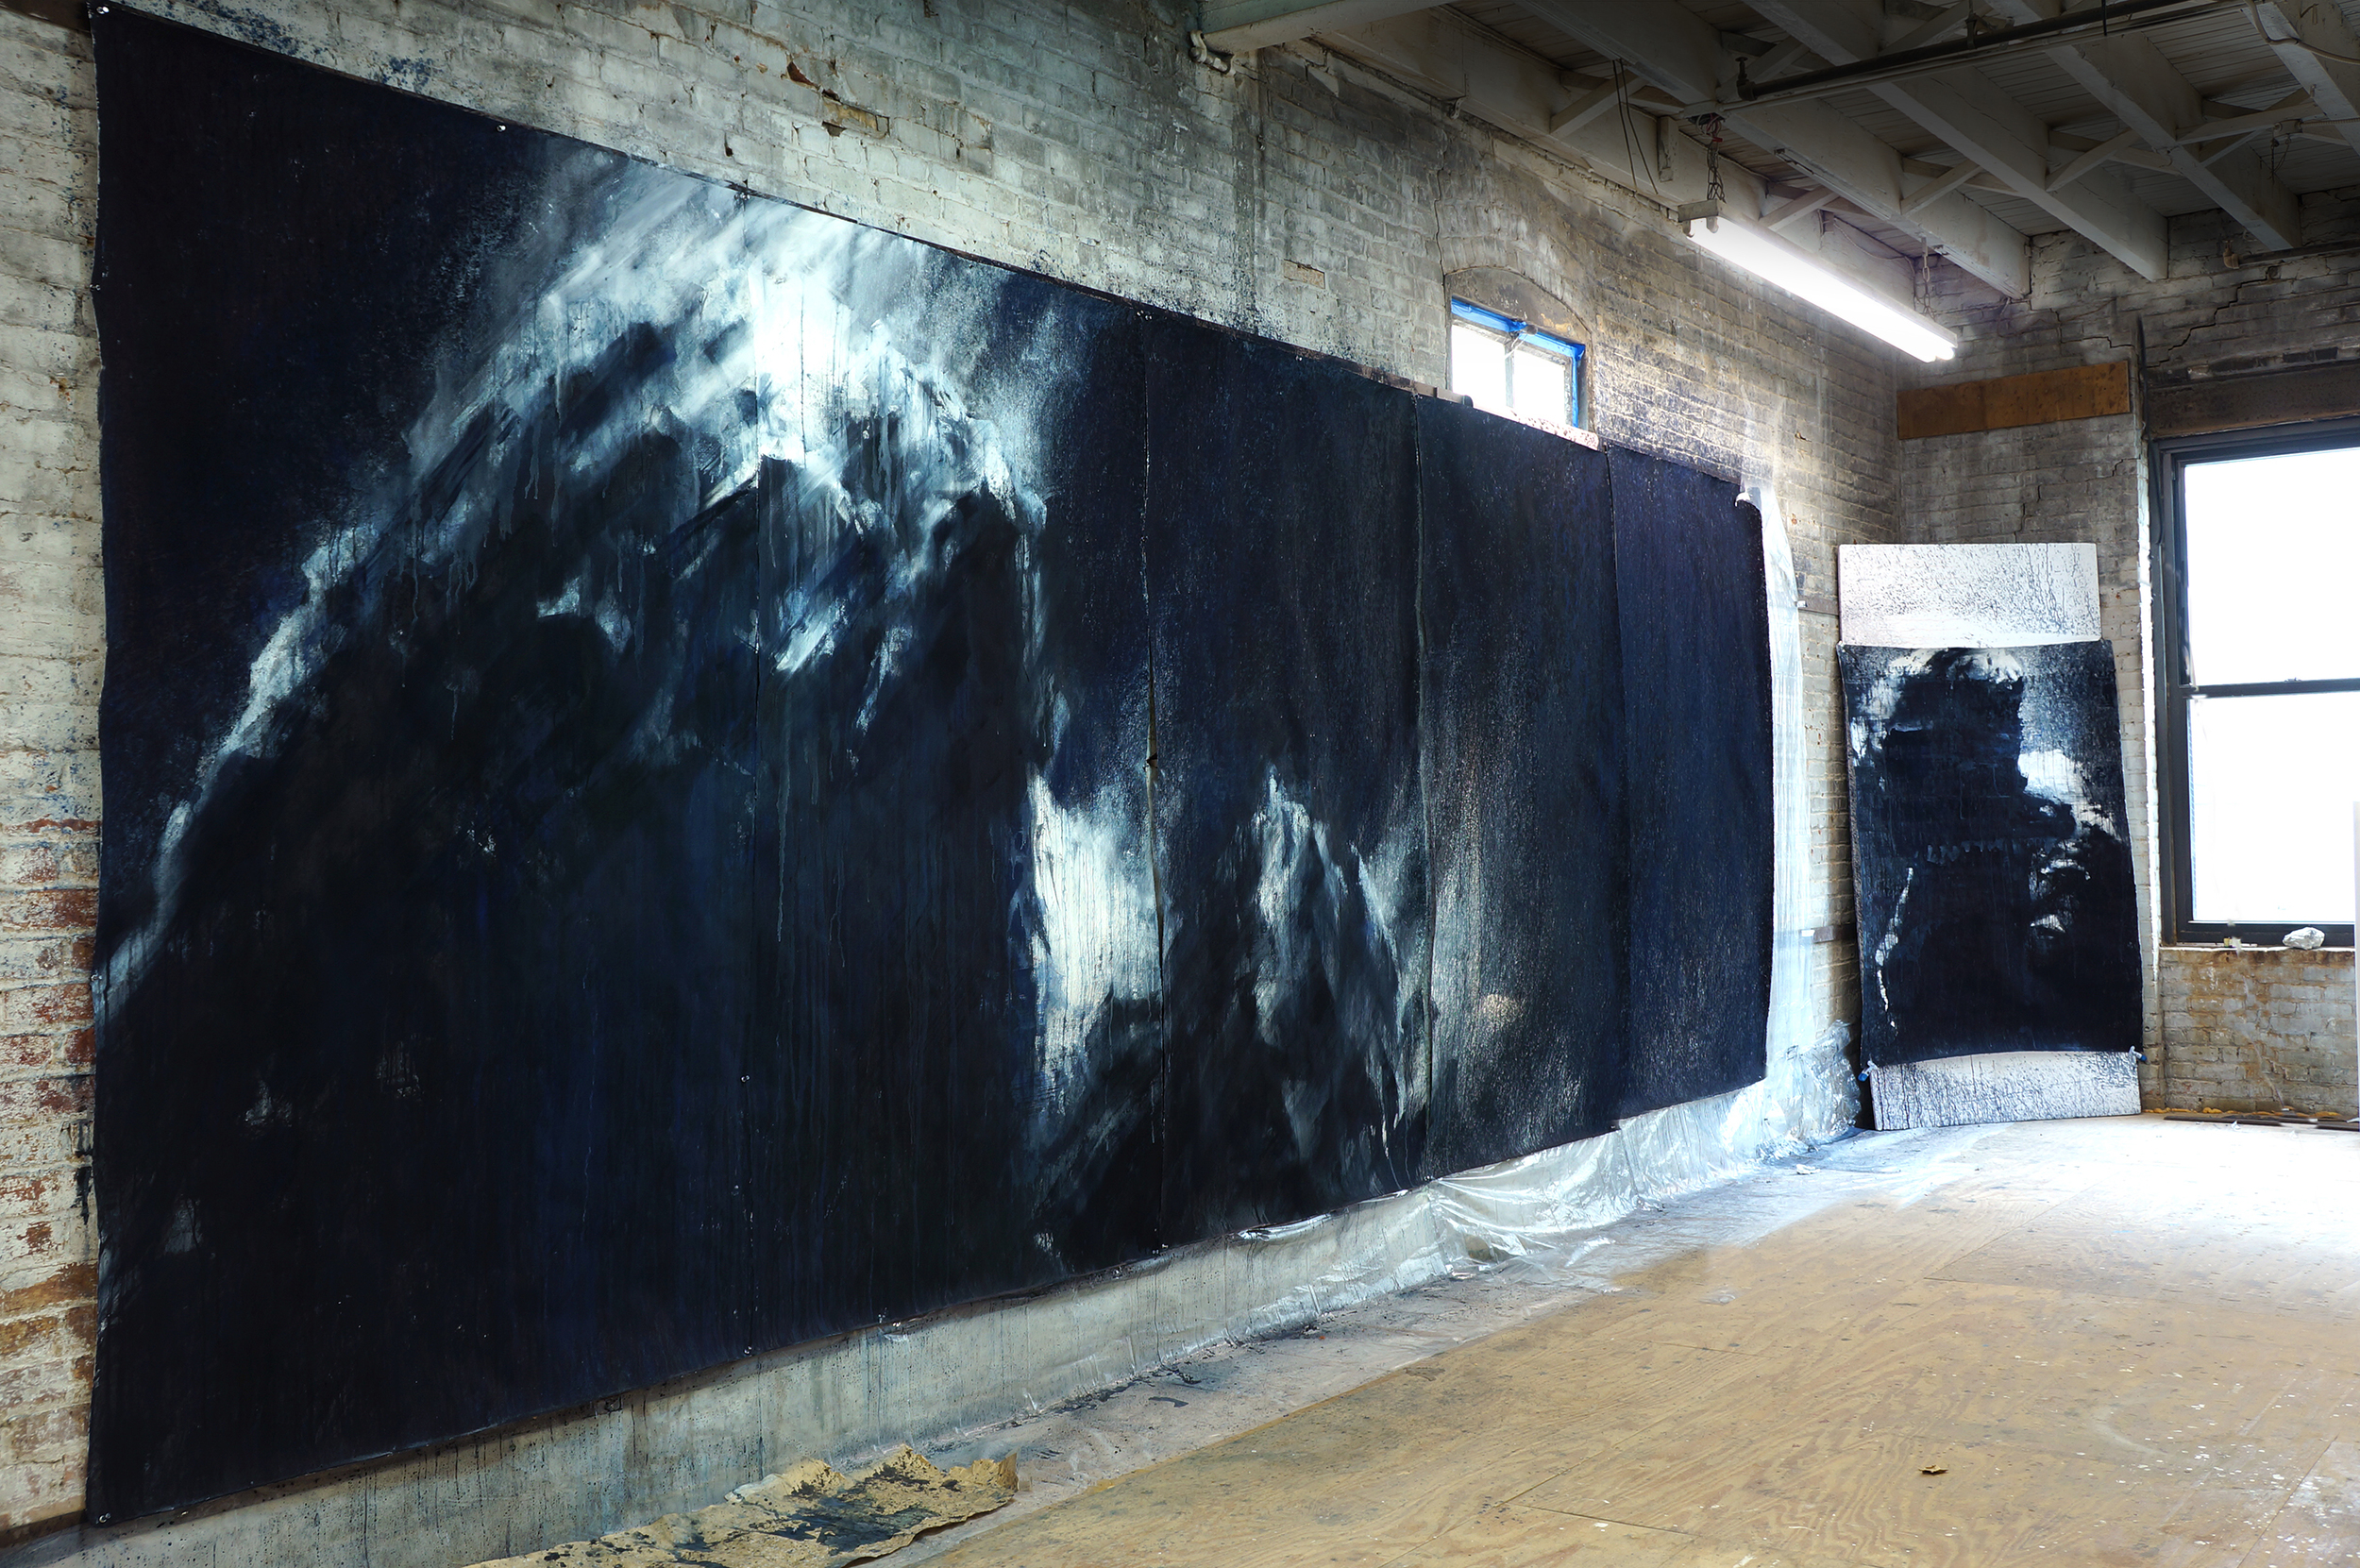 """67P"" most artwork is  based on the photography by Rosetta     watermedia on paper.  90""x260"" (230x660 cm) 2015"